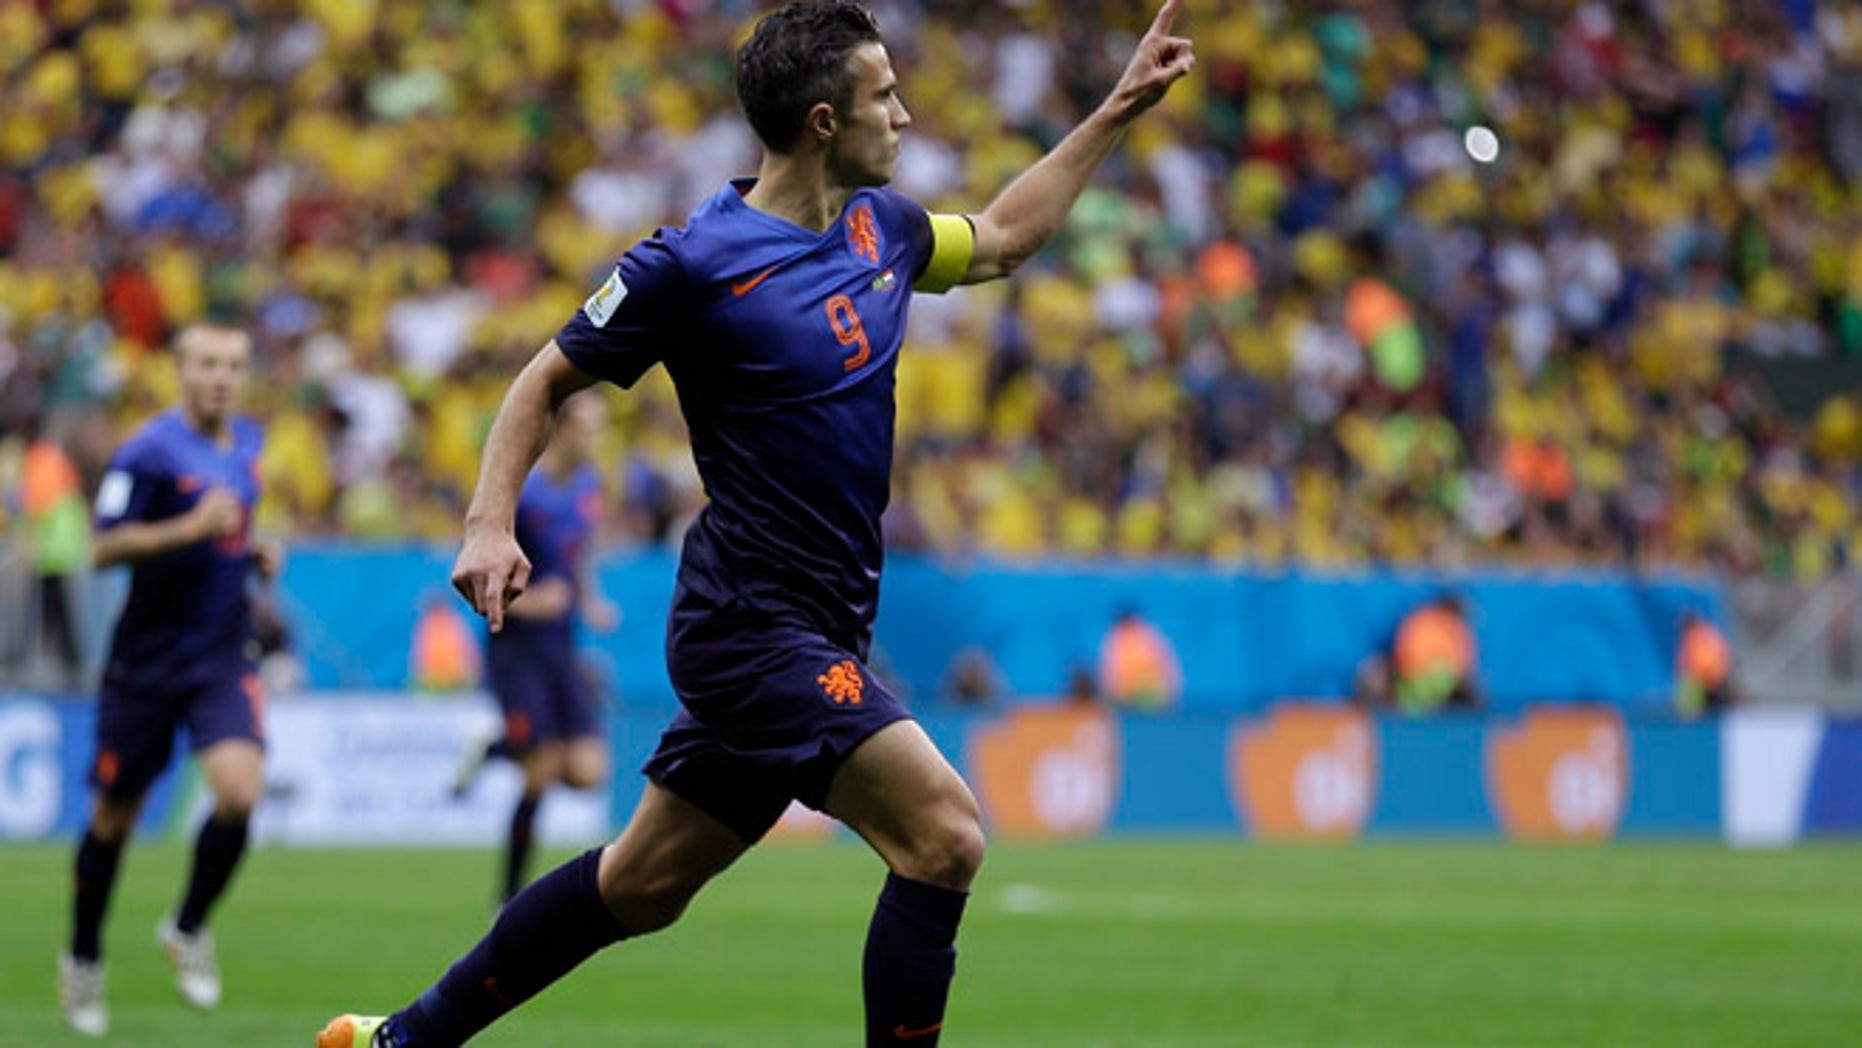 July 12, 2014: Netherlands' Robin van Persie celebrates after scoring his team's first goal on a penalty shot during the World Cup third-place soccer match between Brazil and the Netherlands at the Estadio Nacional in Brasilia, Brazil, Saturday, July 12, 2014. (AP)